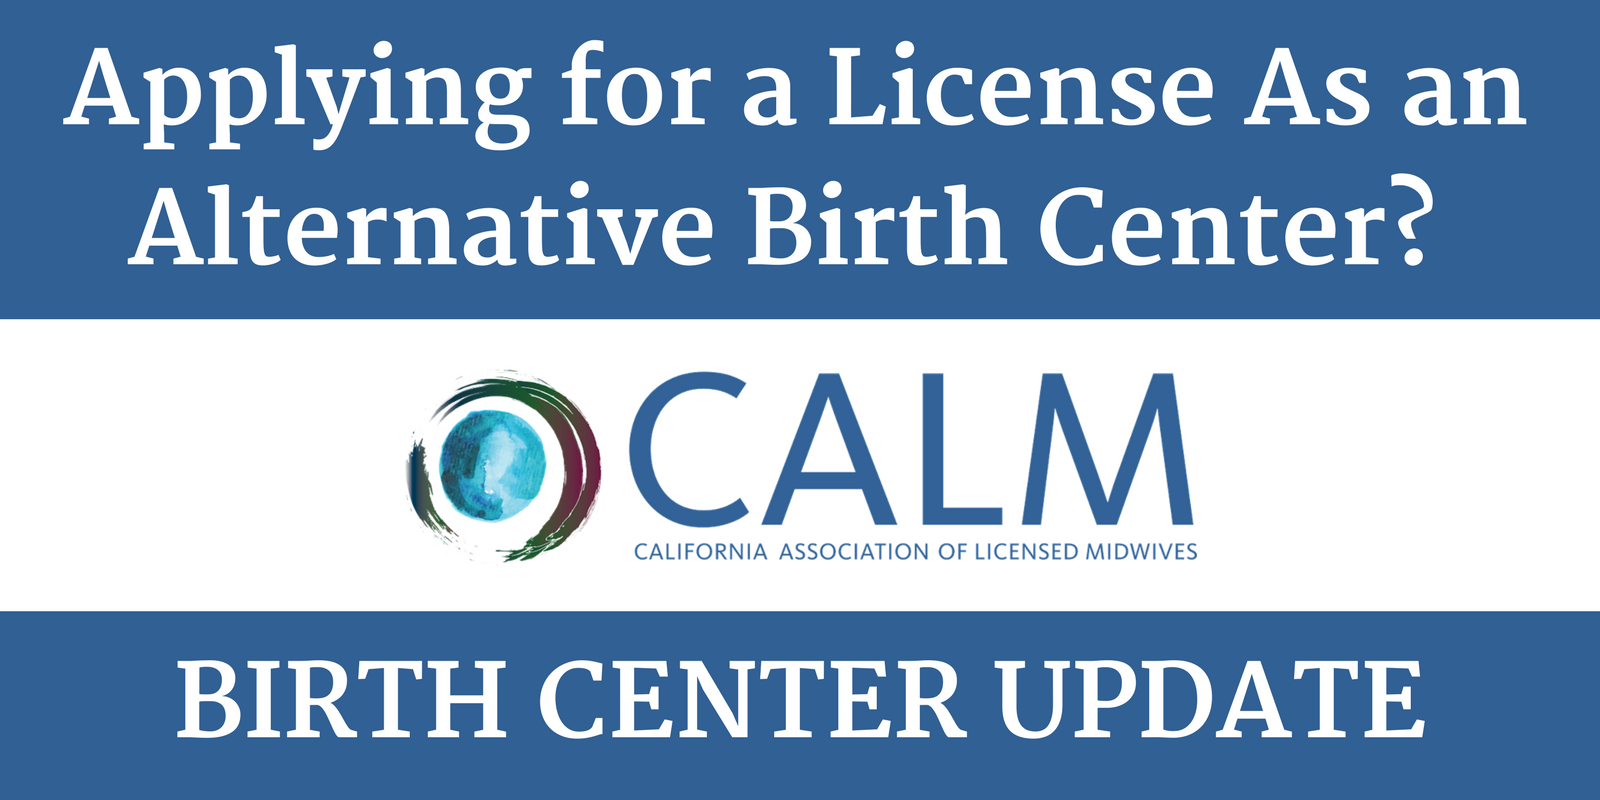 Important Development- Medi-Cal Billing for Care of Licensed Midwives Takes Key Step Forward (3)